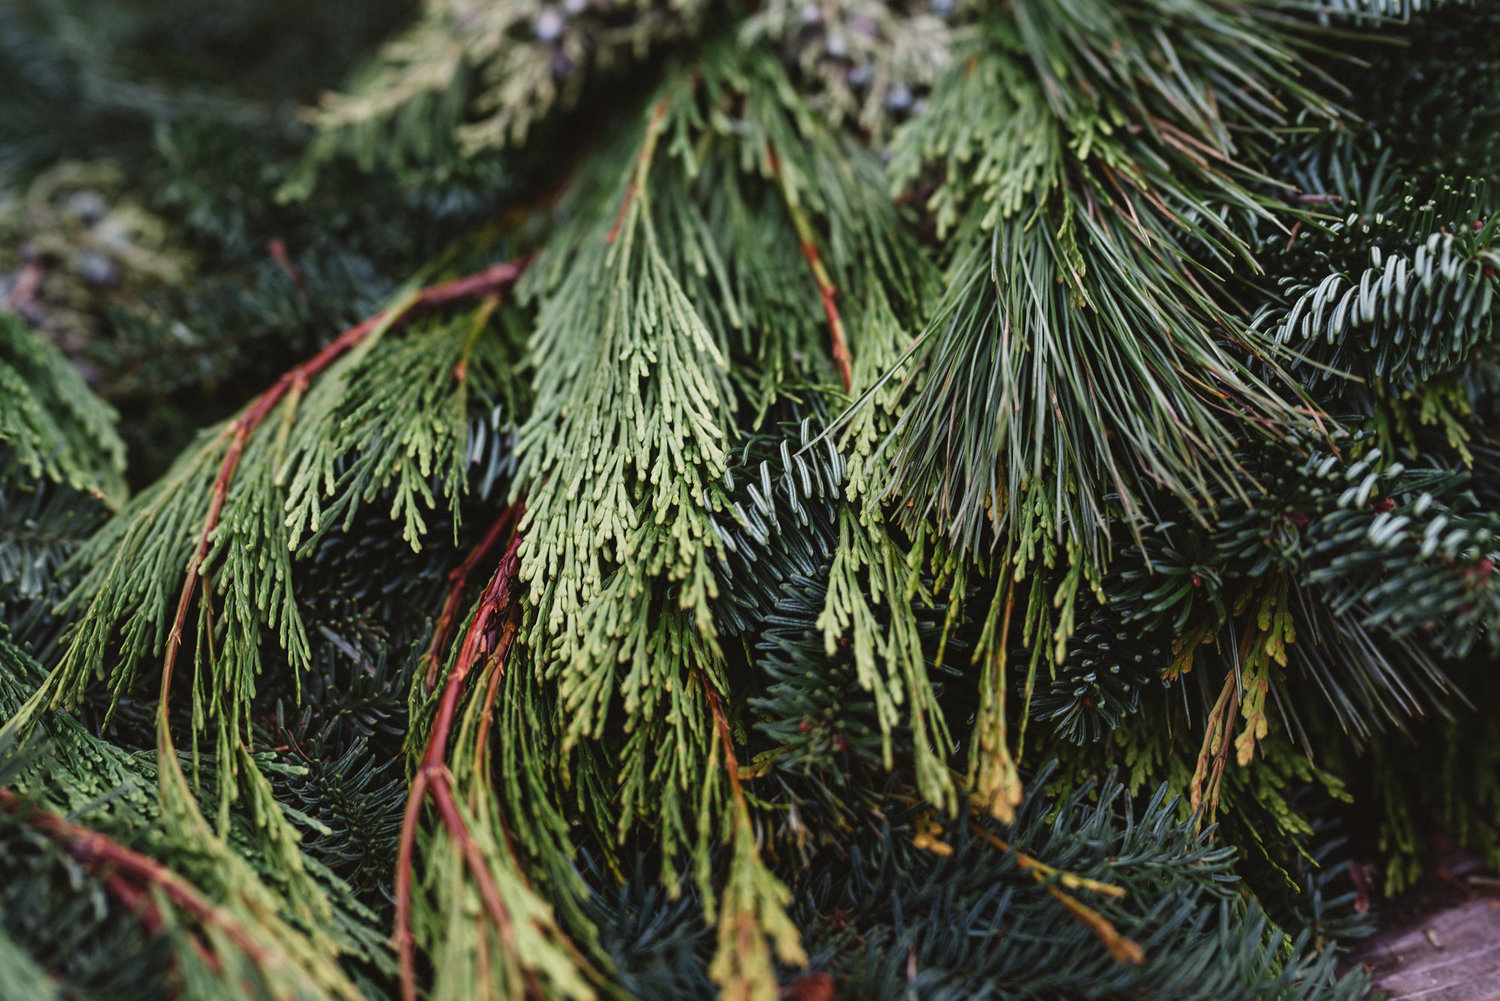 keeping your holiday greenery fresh - Fresh Christmas Greenery